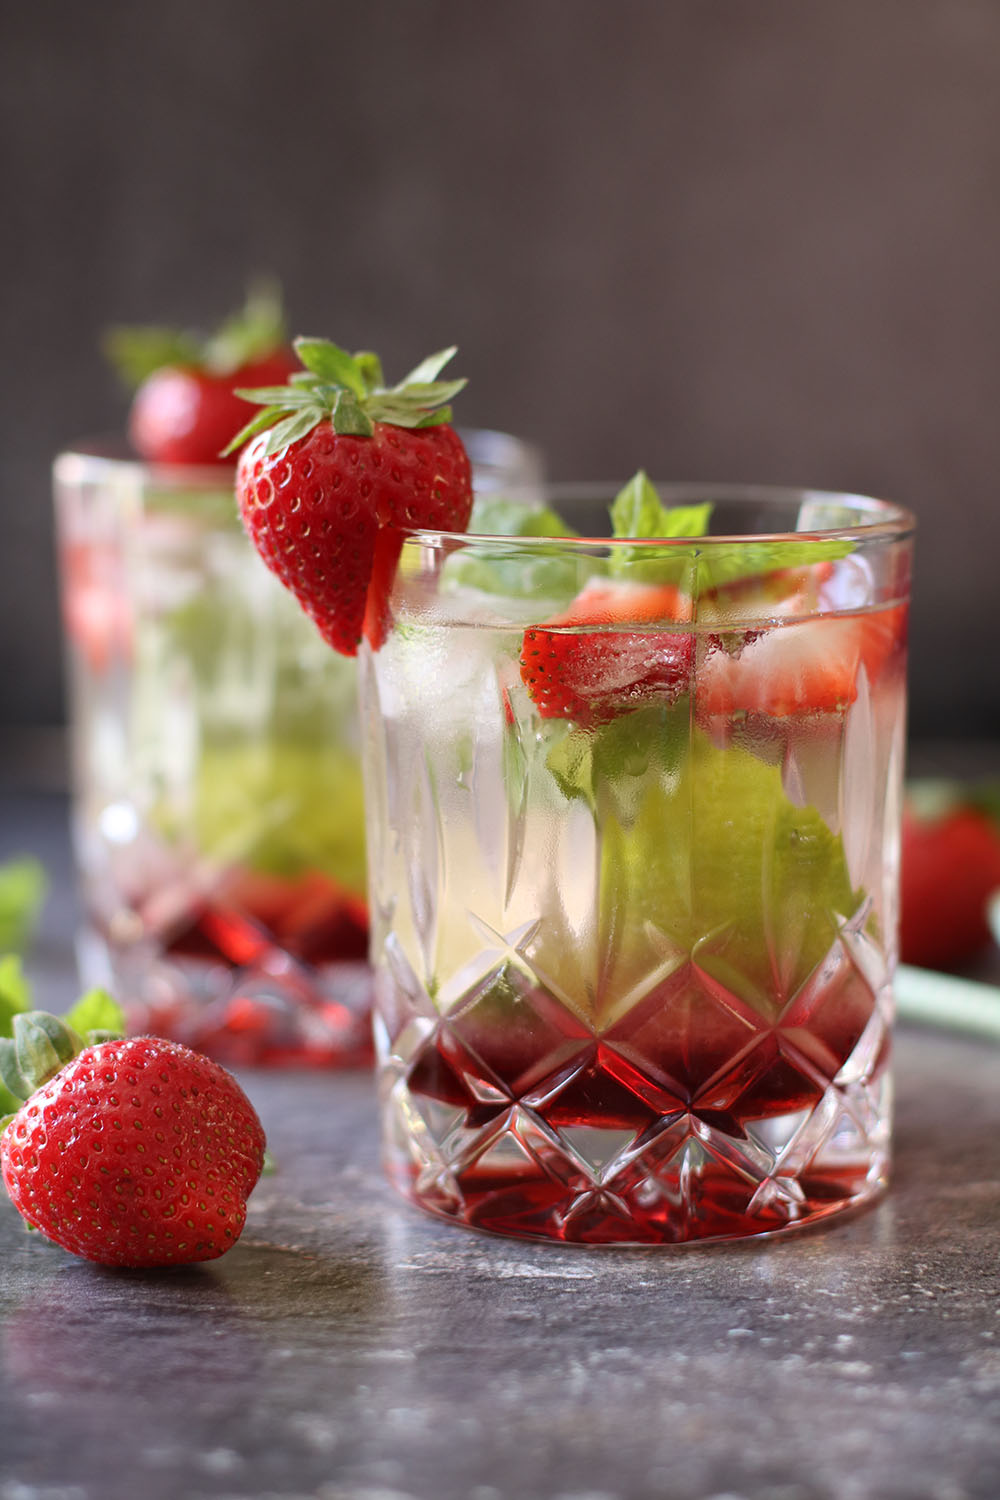 Fredagscocktail - Strawberry mojito